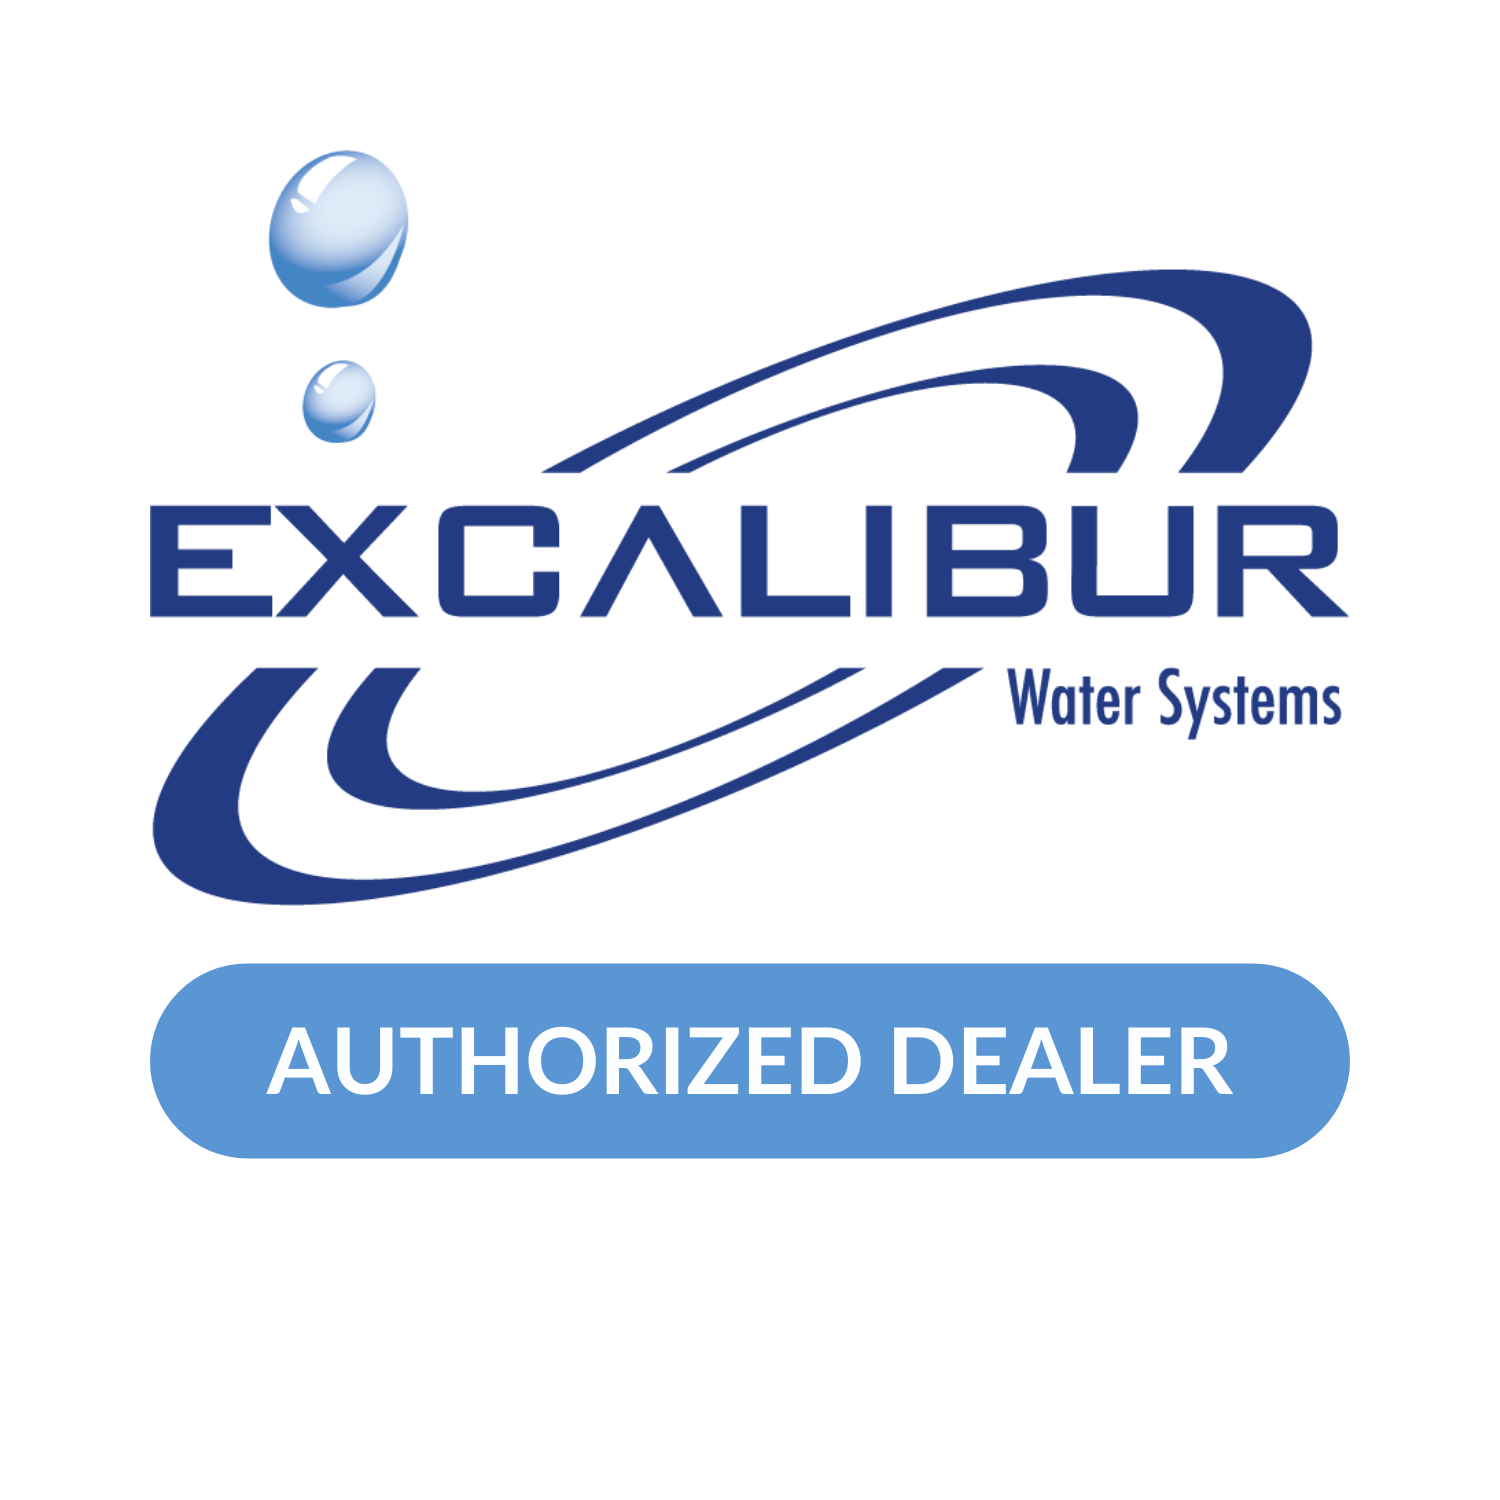 Vandermeulen Plumbing is an authorized Excalibur dealer.